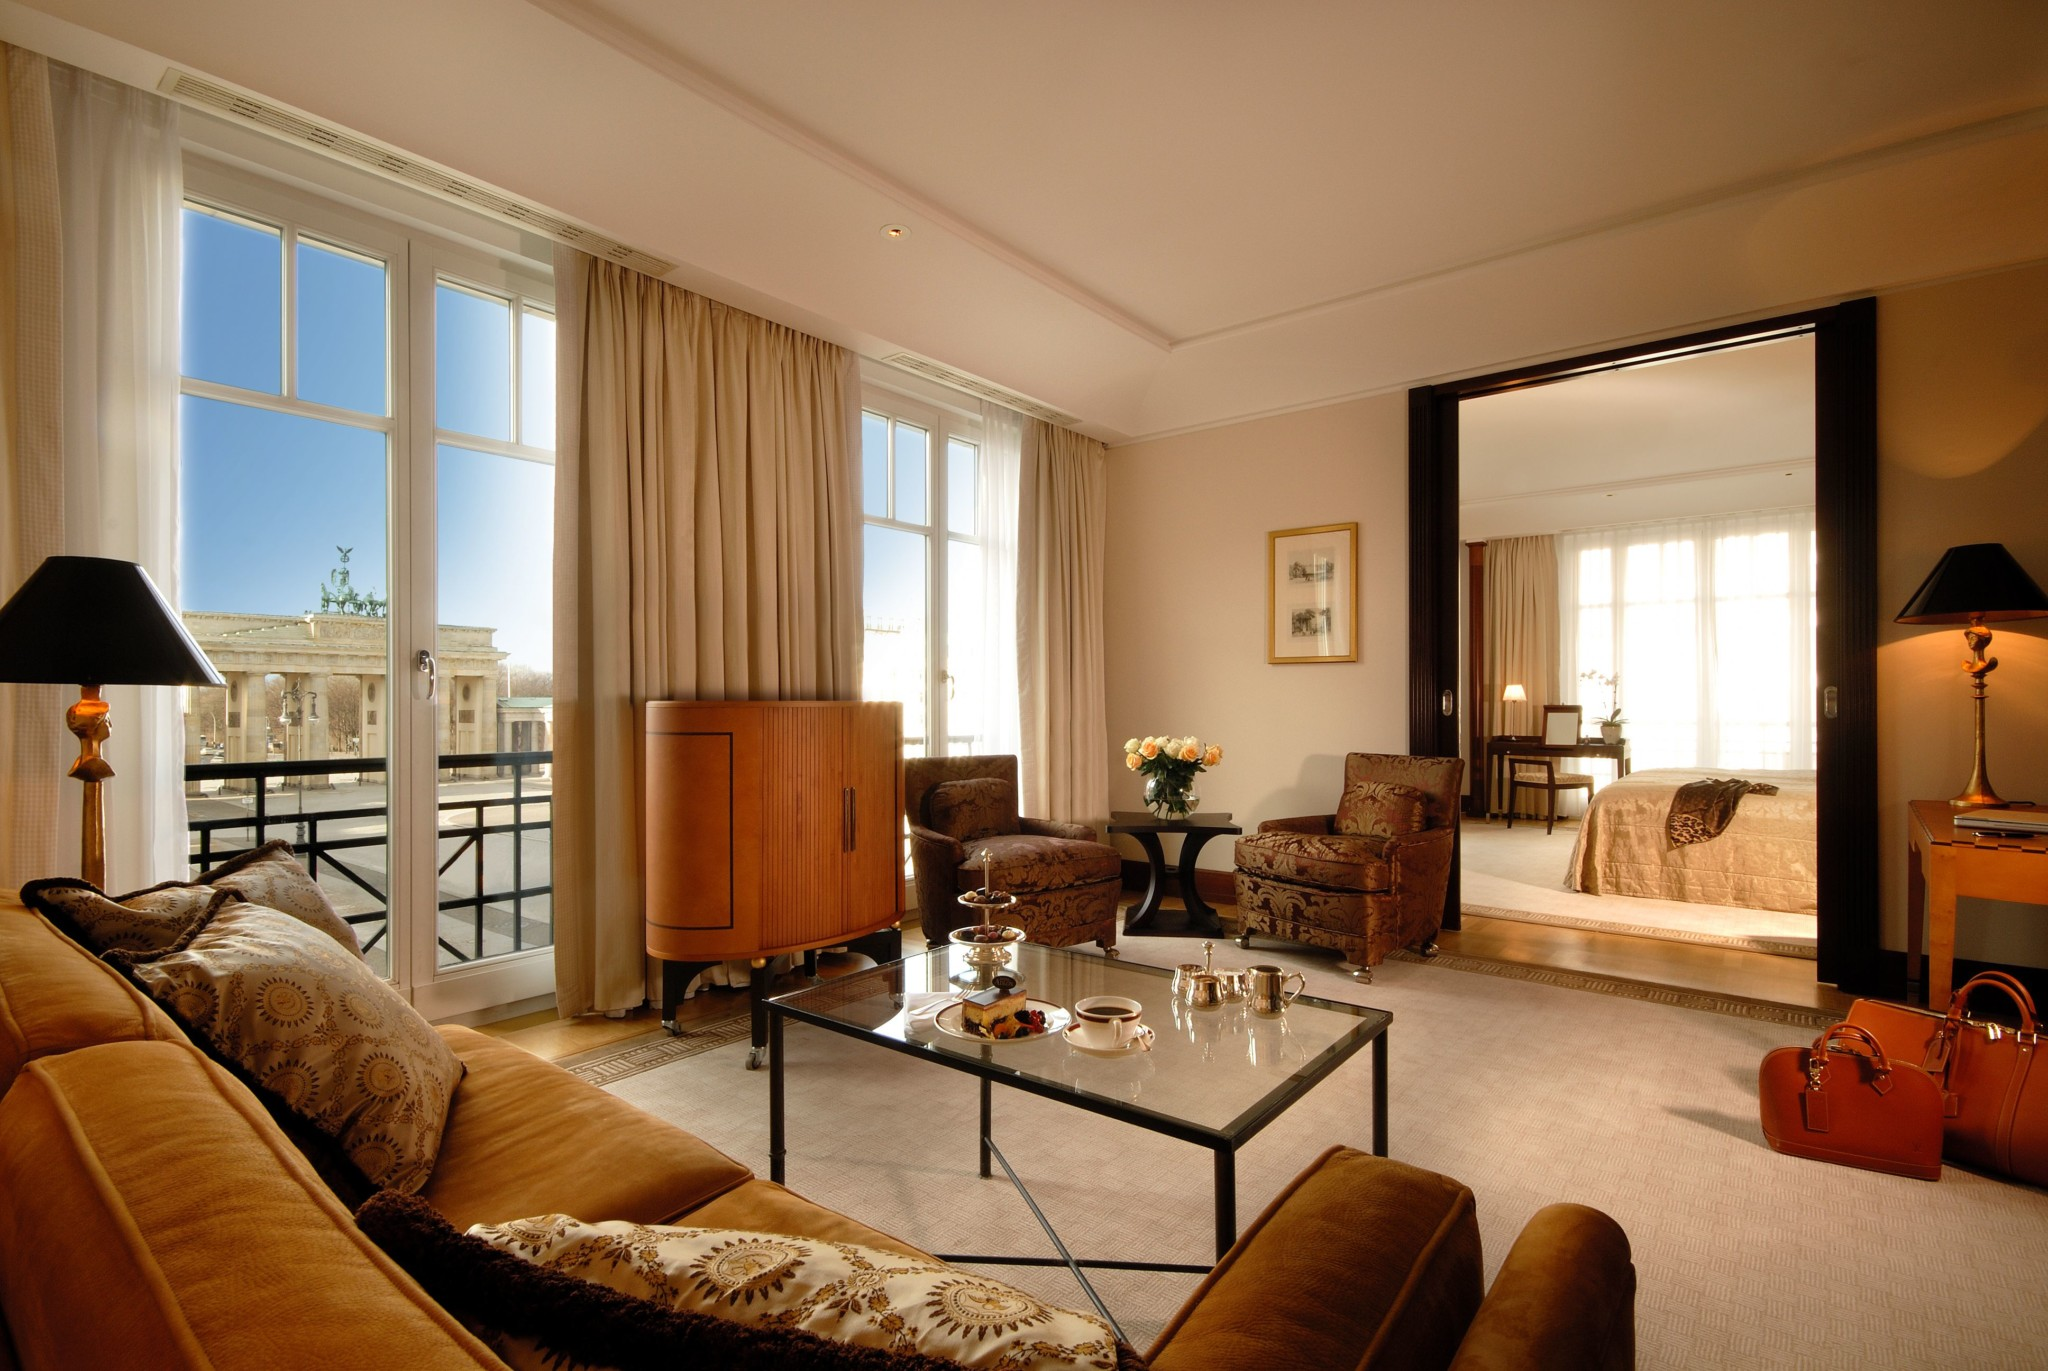 Suite at the Arlon Kempinski